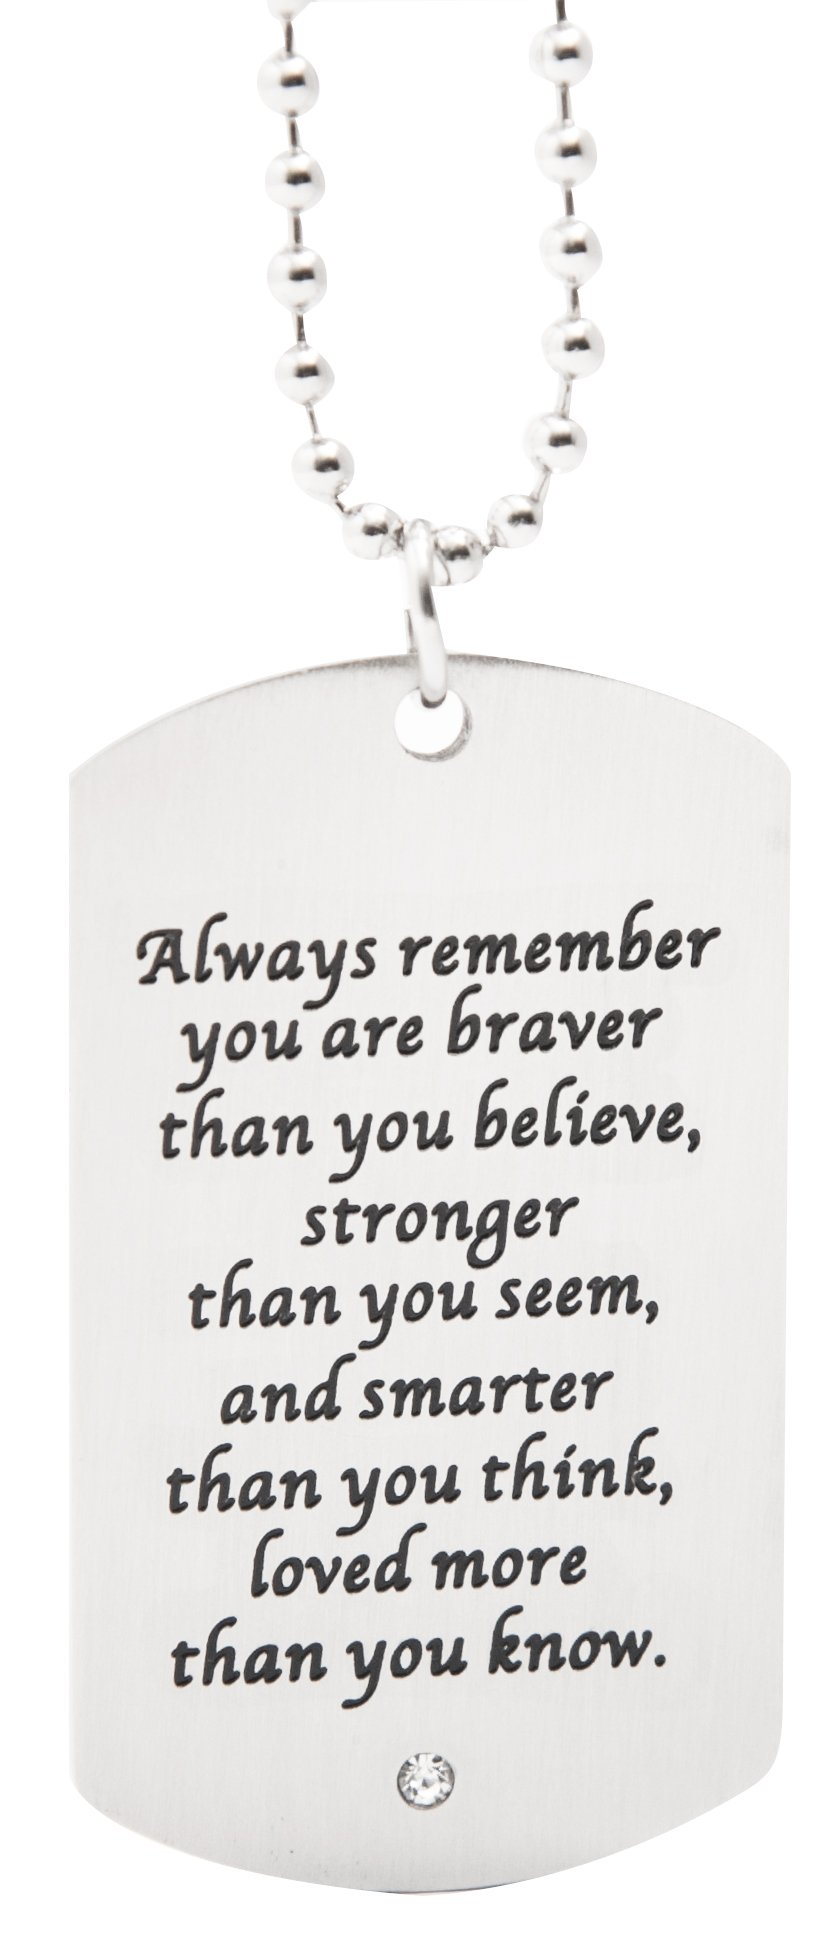 Pendant Dogtag On Chain - You Are Braver Than You Believe, Stronger Than You Seem - Robust Stainless Steel Jewelry For Boys And Men (Always Remember)